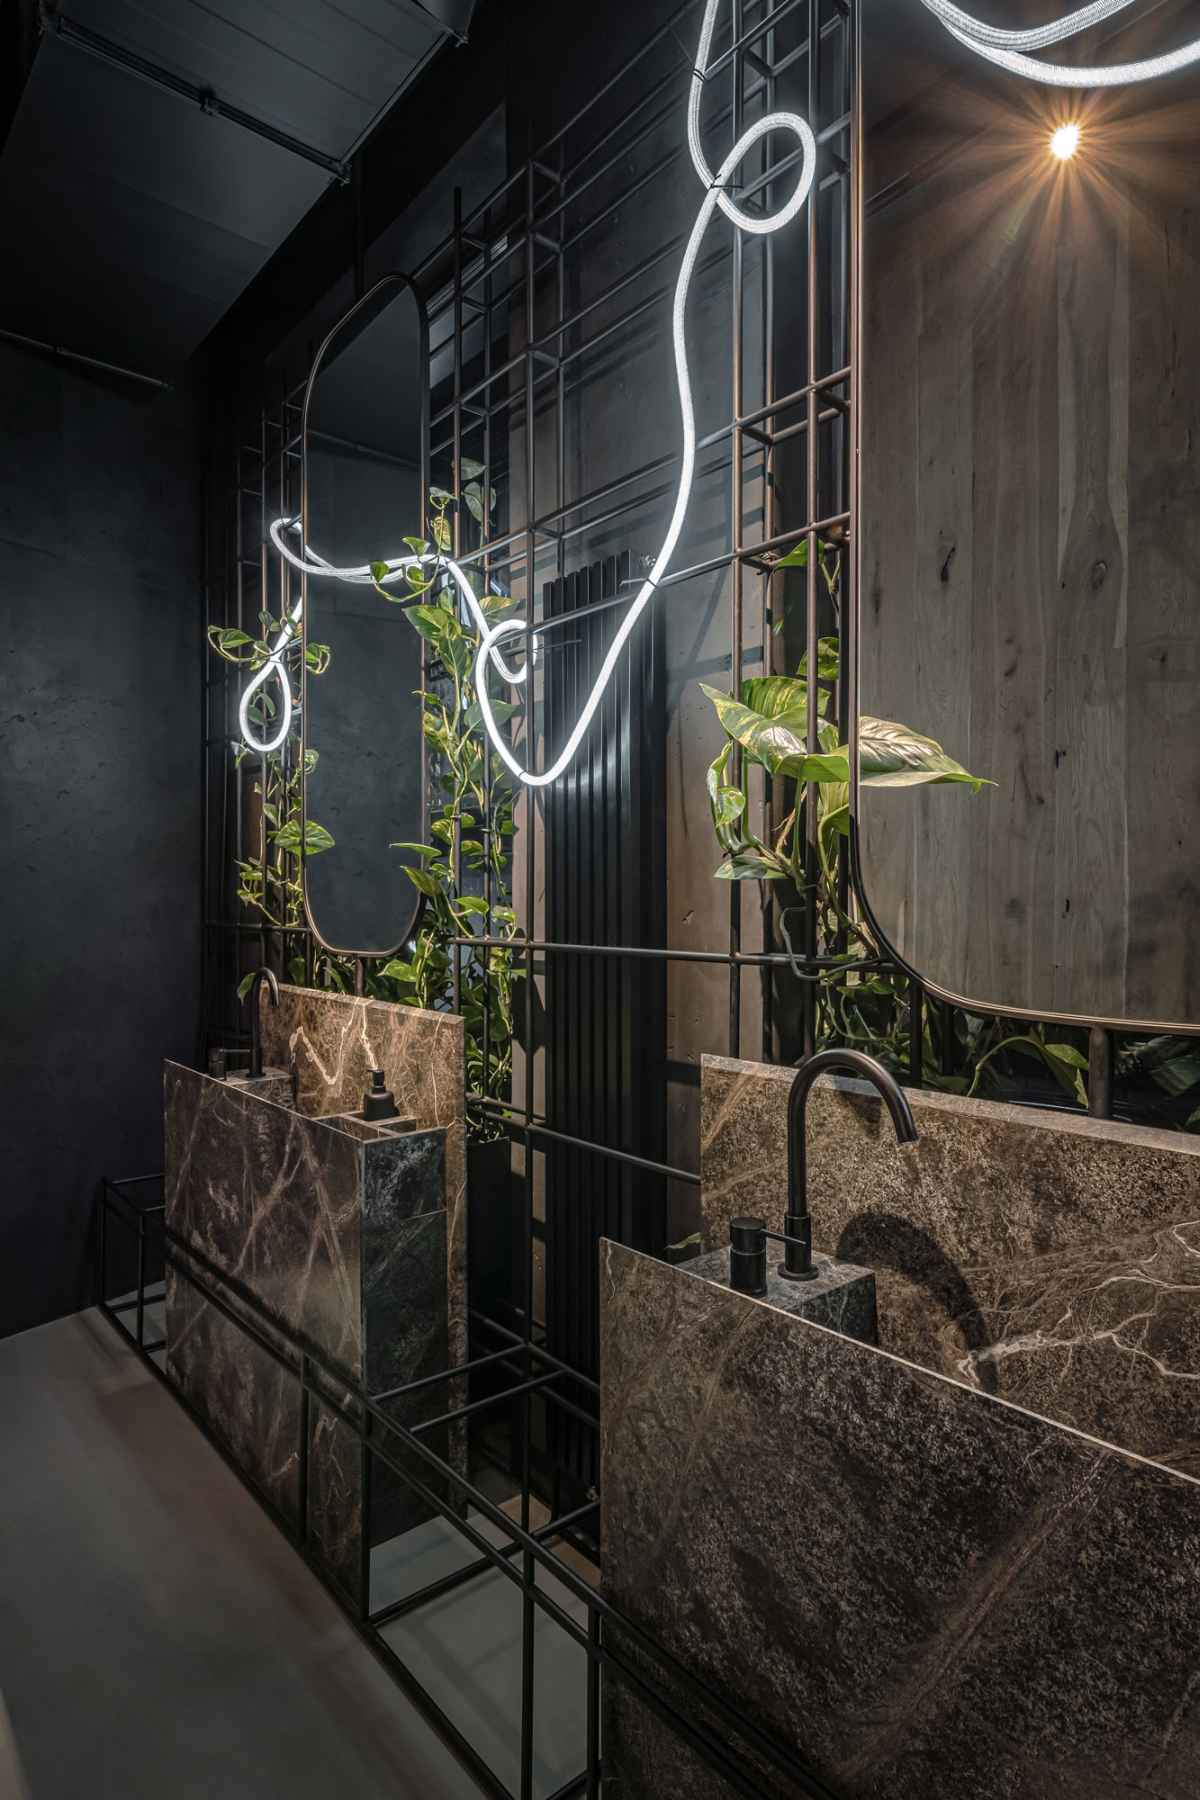 The lighting in the restroom is in the form of a slender tube that bends and twists adding a playful touch to the decor